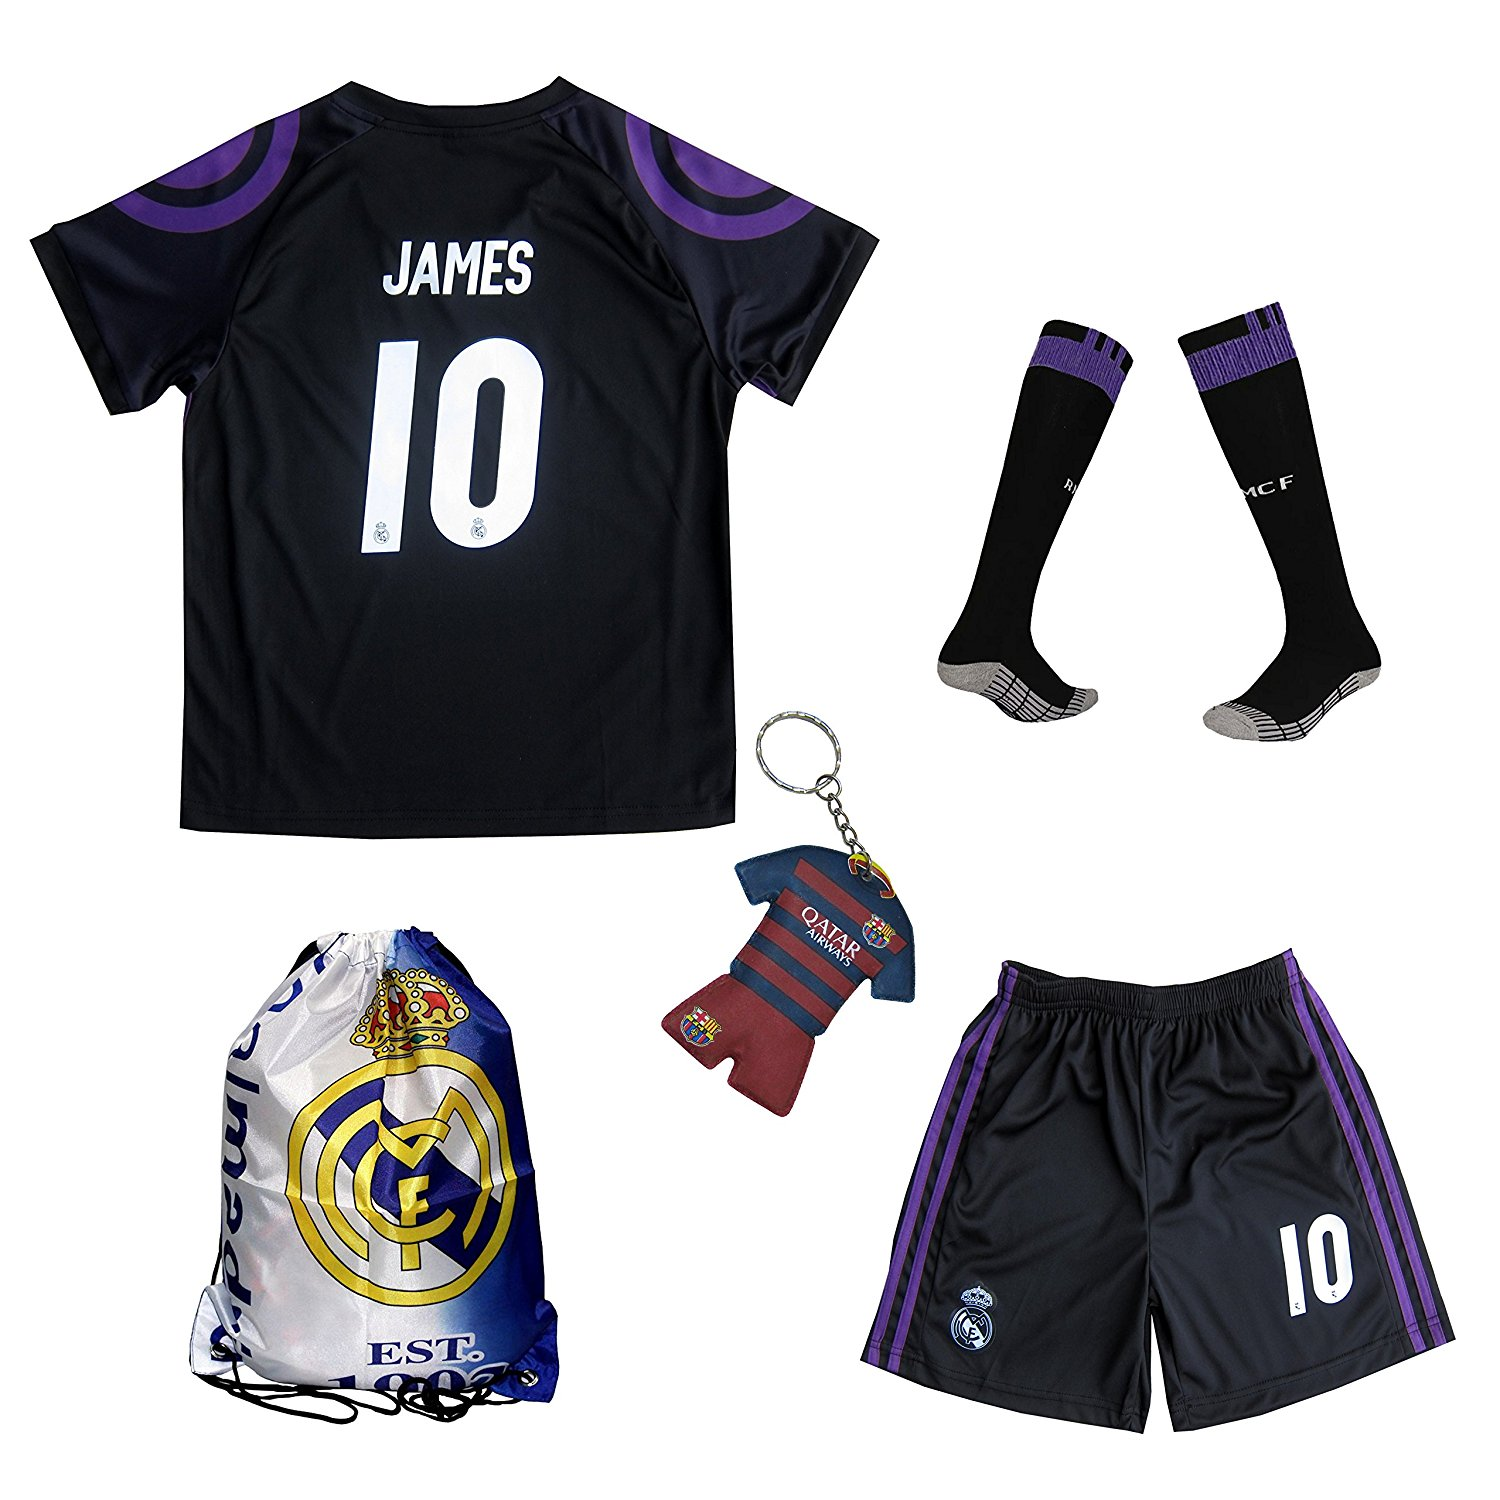 4d53a9729 ... Fanatics Authentic Certified. 299.95. 2016 2017 Real Madrid James  Rodriguez  10 Away Black Football Soccer Kids Jersey   Short   Sock   Soccer  Bag Youth ...